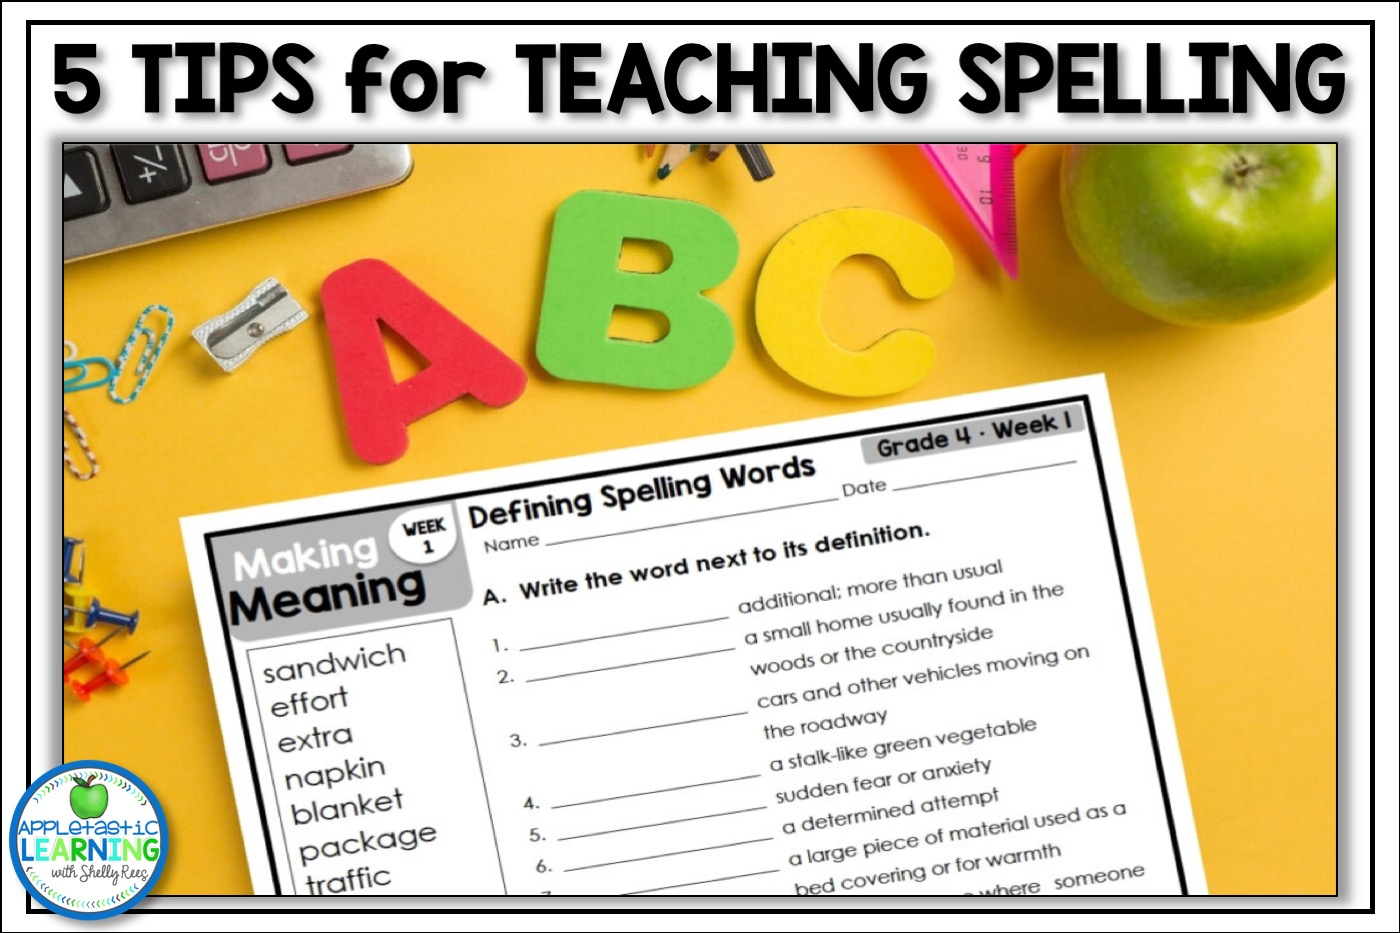 5 tips for teaching spelling in the upper elementary classroom